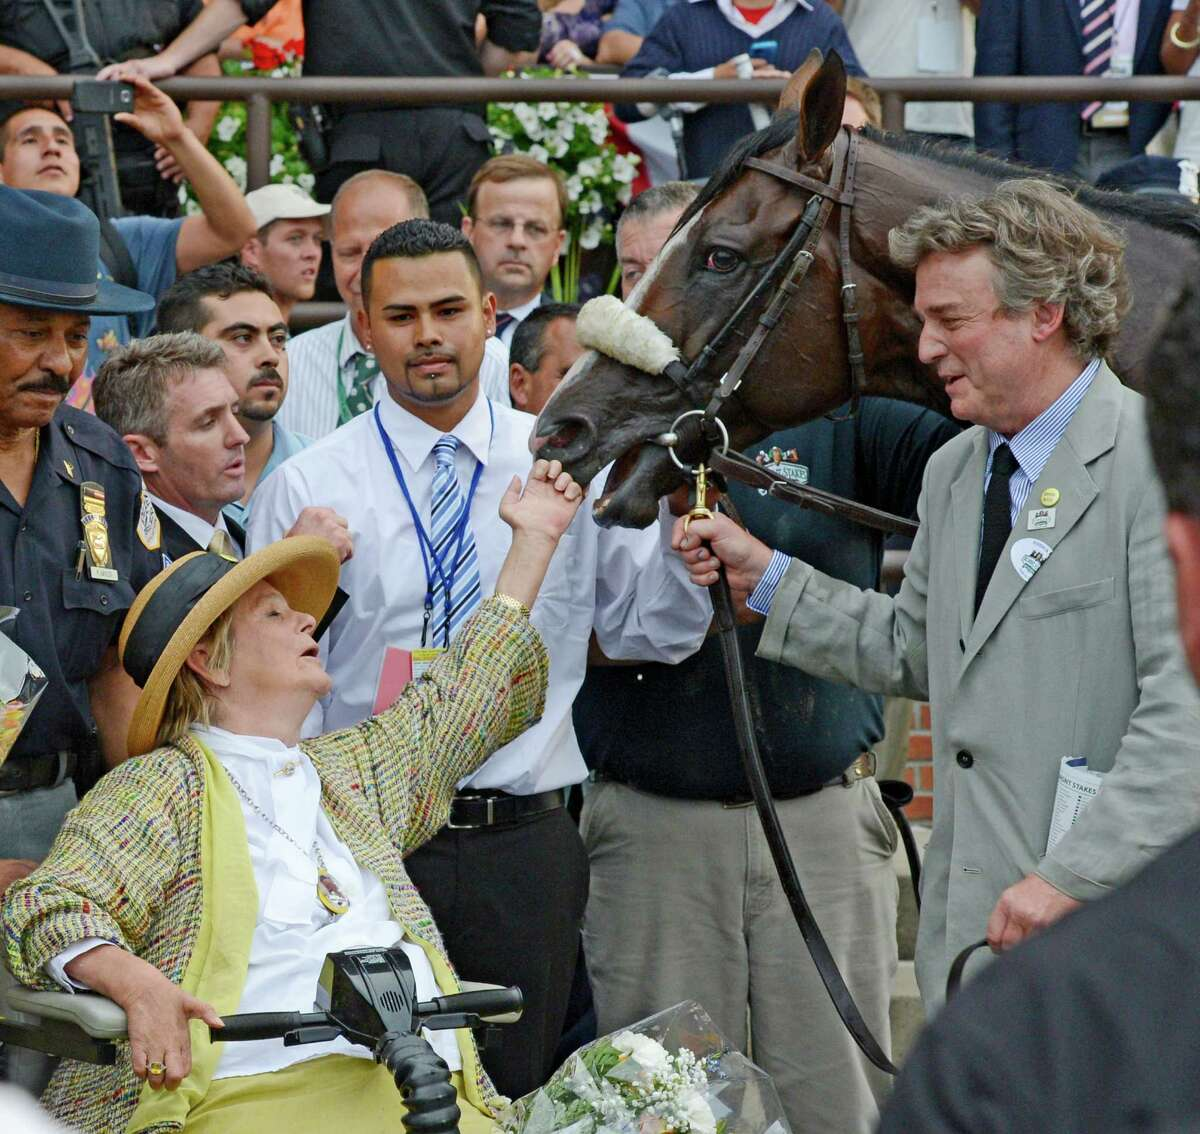 Union Rags gets a tap on the nose from owner Phyllis Wyeth after winning the 144th running of The Belmont Stakes at Belmont Park in Elmont, N.Y. June 9, 2012.